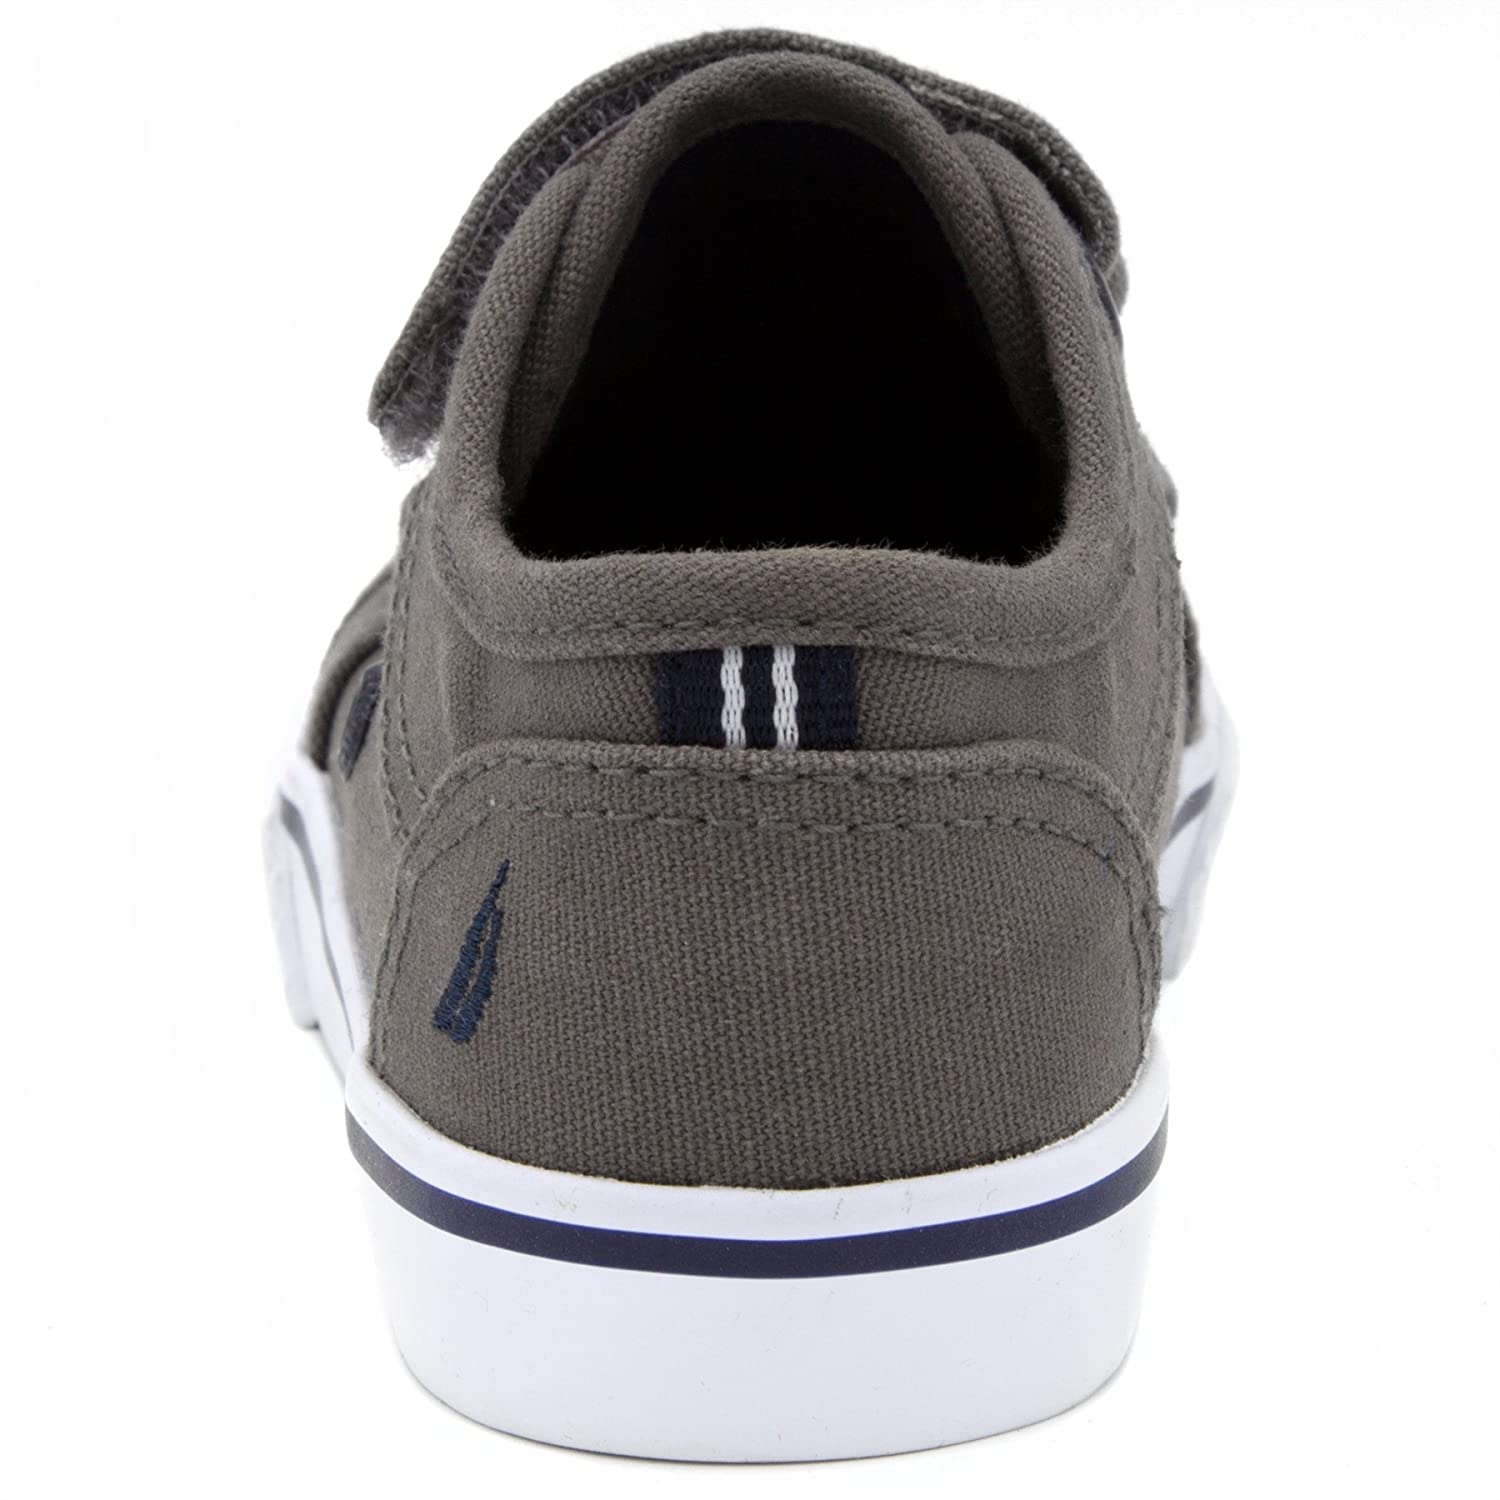 Nautica Kids Calloway Sneakers Adjustable Straps Bungee Straps Casual Shoes Toddler//Little Kid